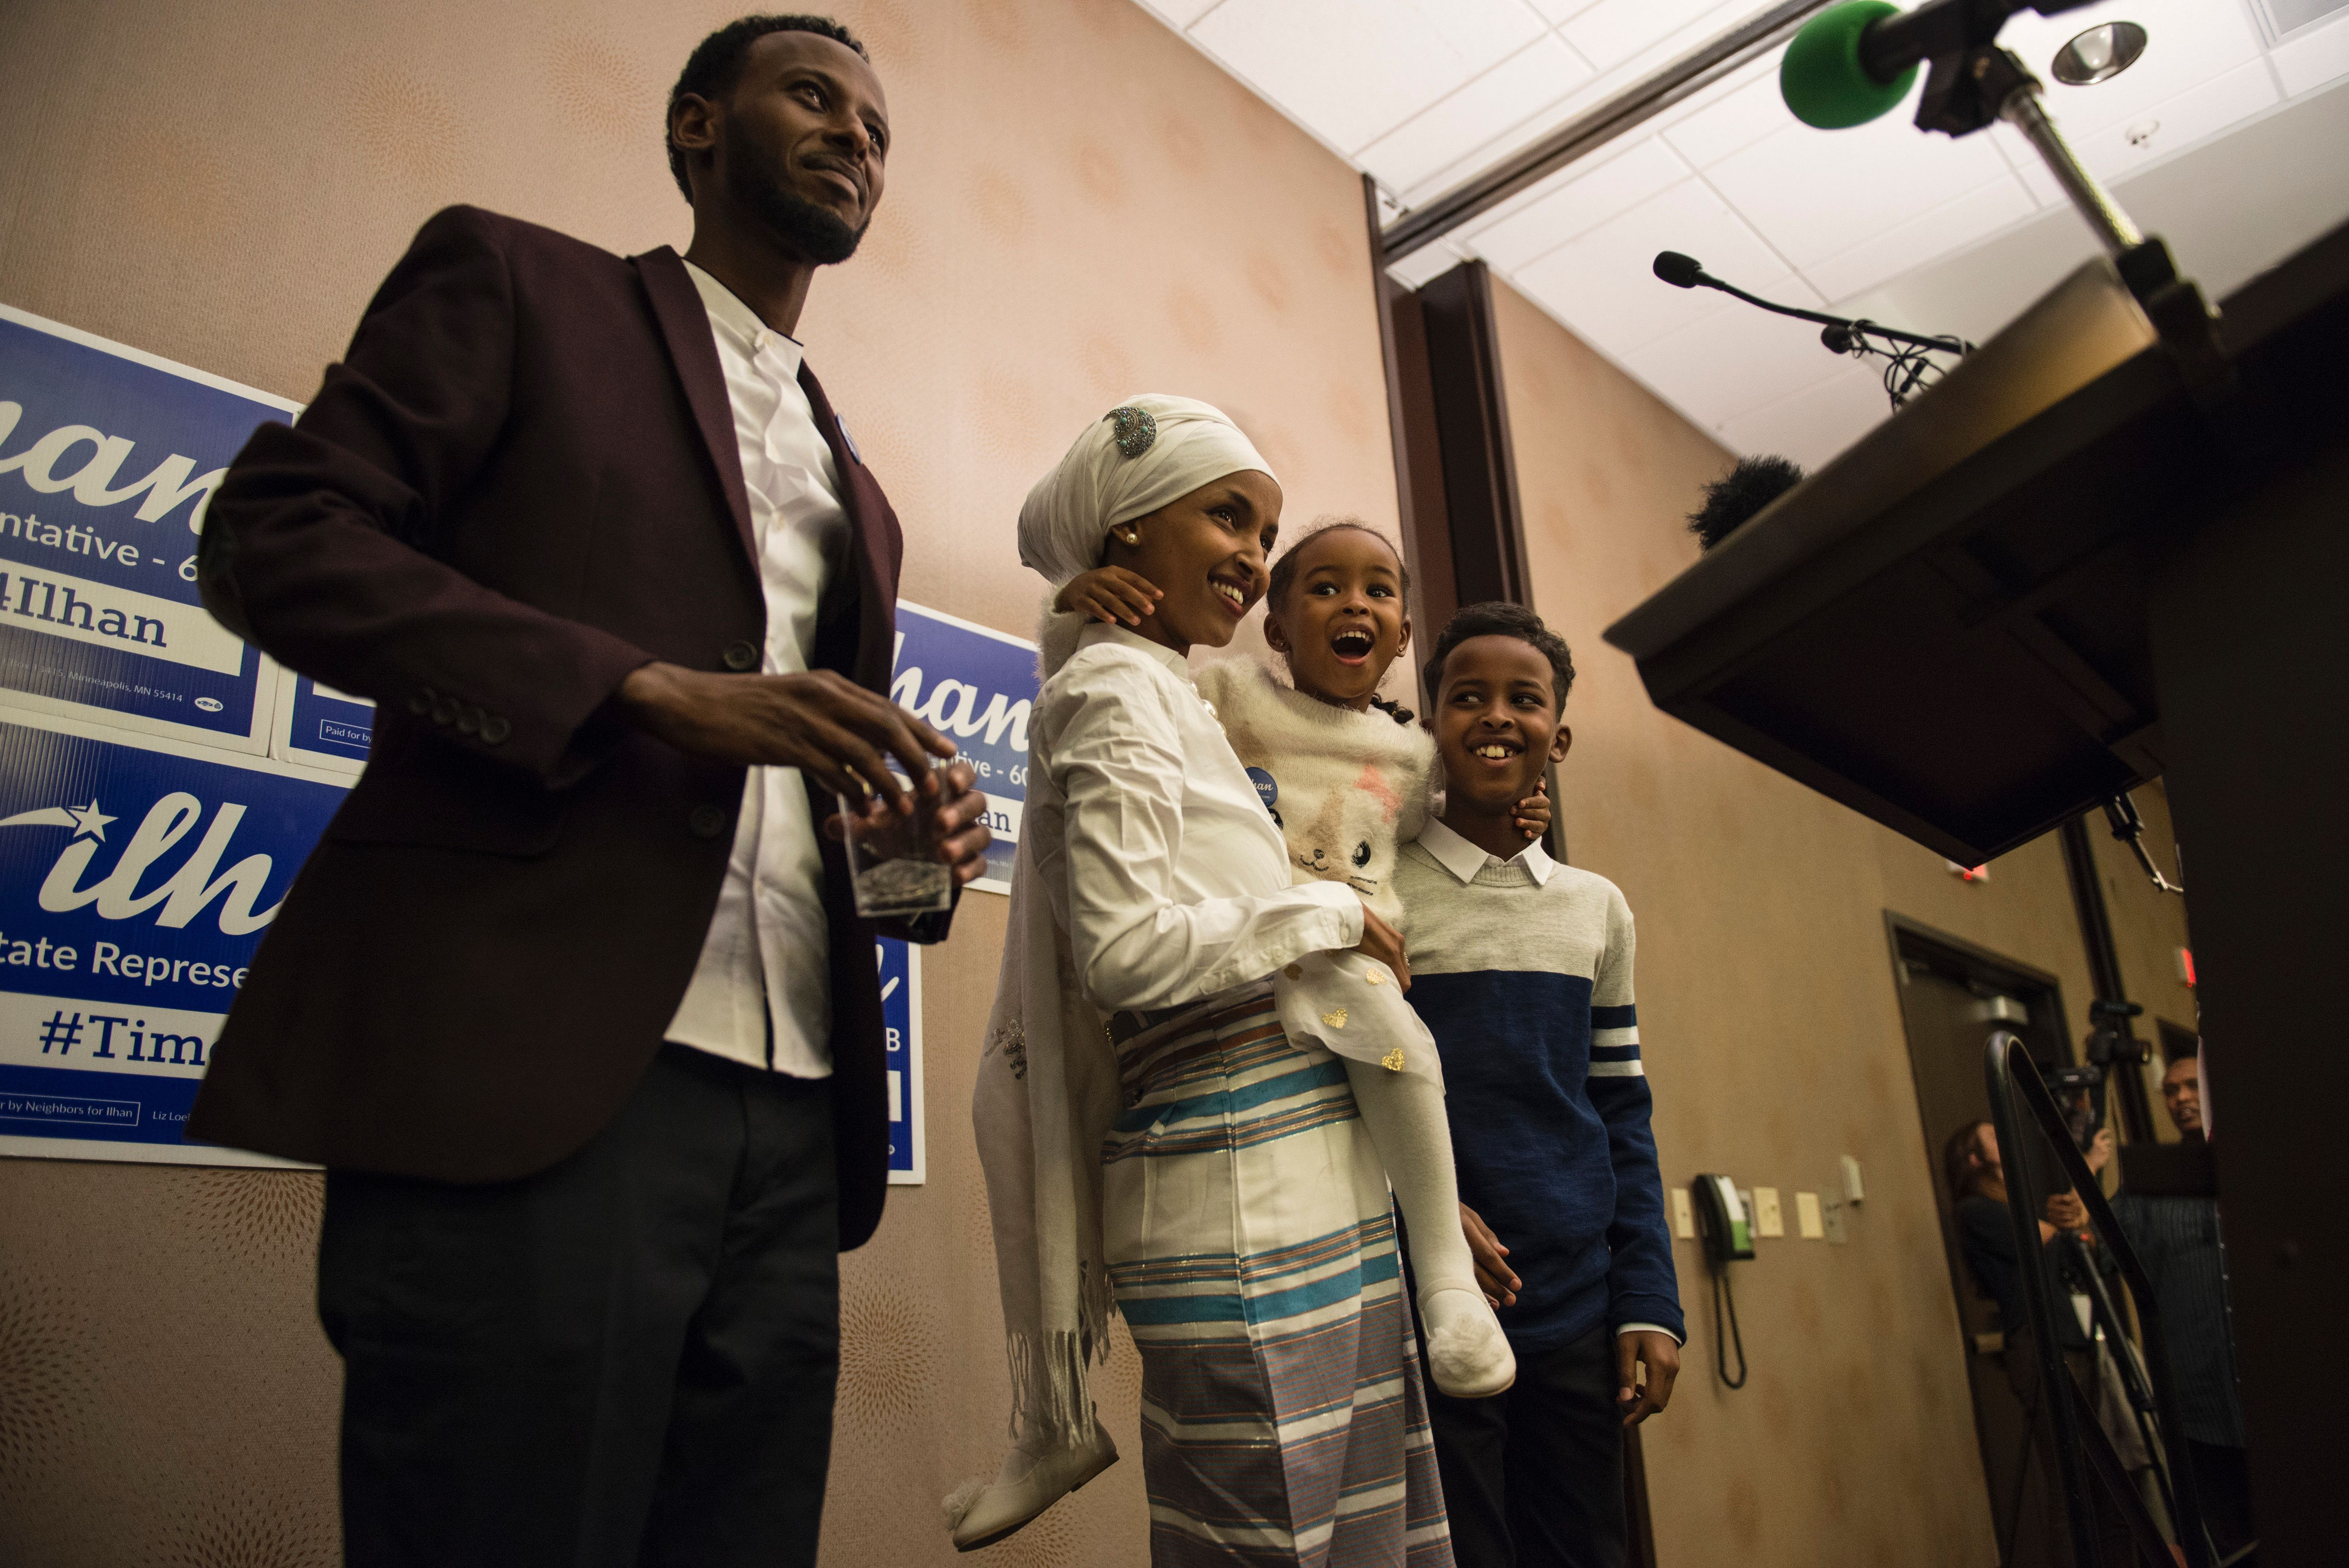 Ilhan Omar, candidate for State Representative in Minnesota, stands with her family during her victory party on election night, November 8, 2016 in Minneapolis, Minnesota.